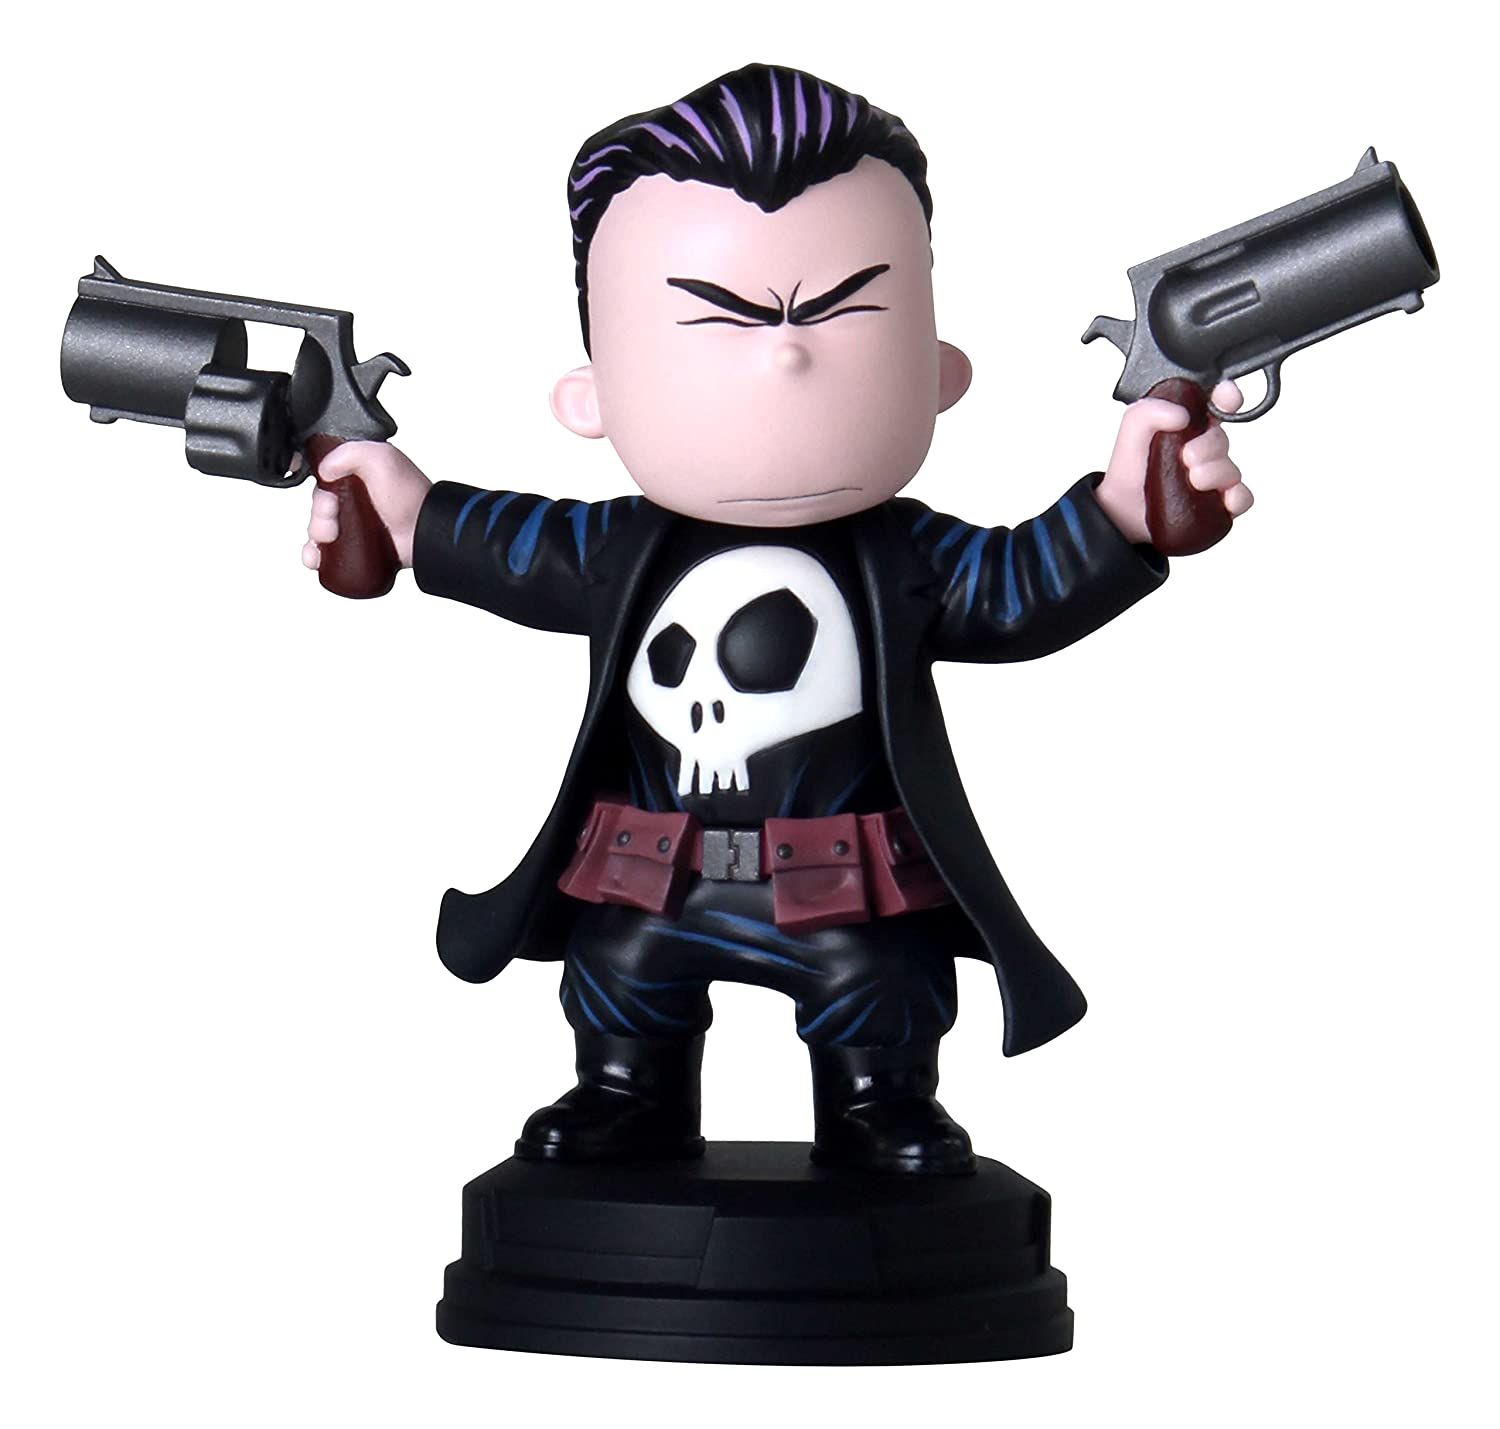 MARVEL Punisher Animated Statue Gentle Giant LTD Toys 80705 Accessory Consumer Accessories